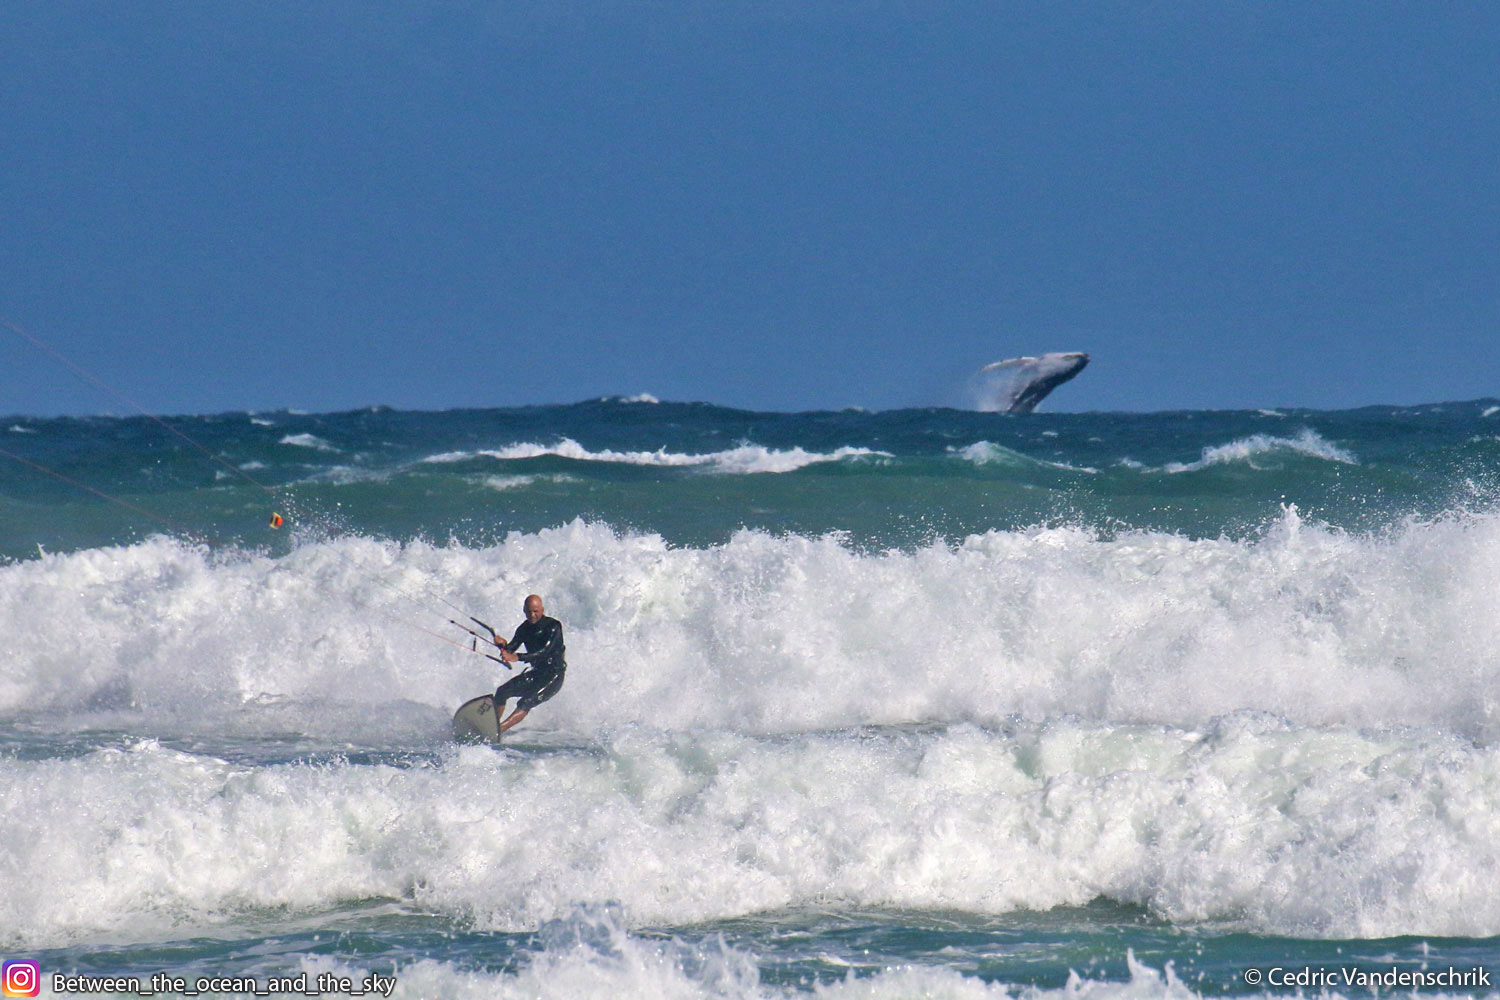 The kiter and the Whale